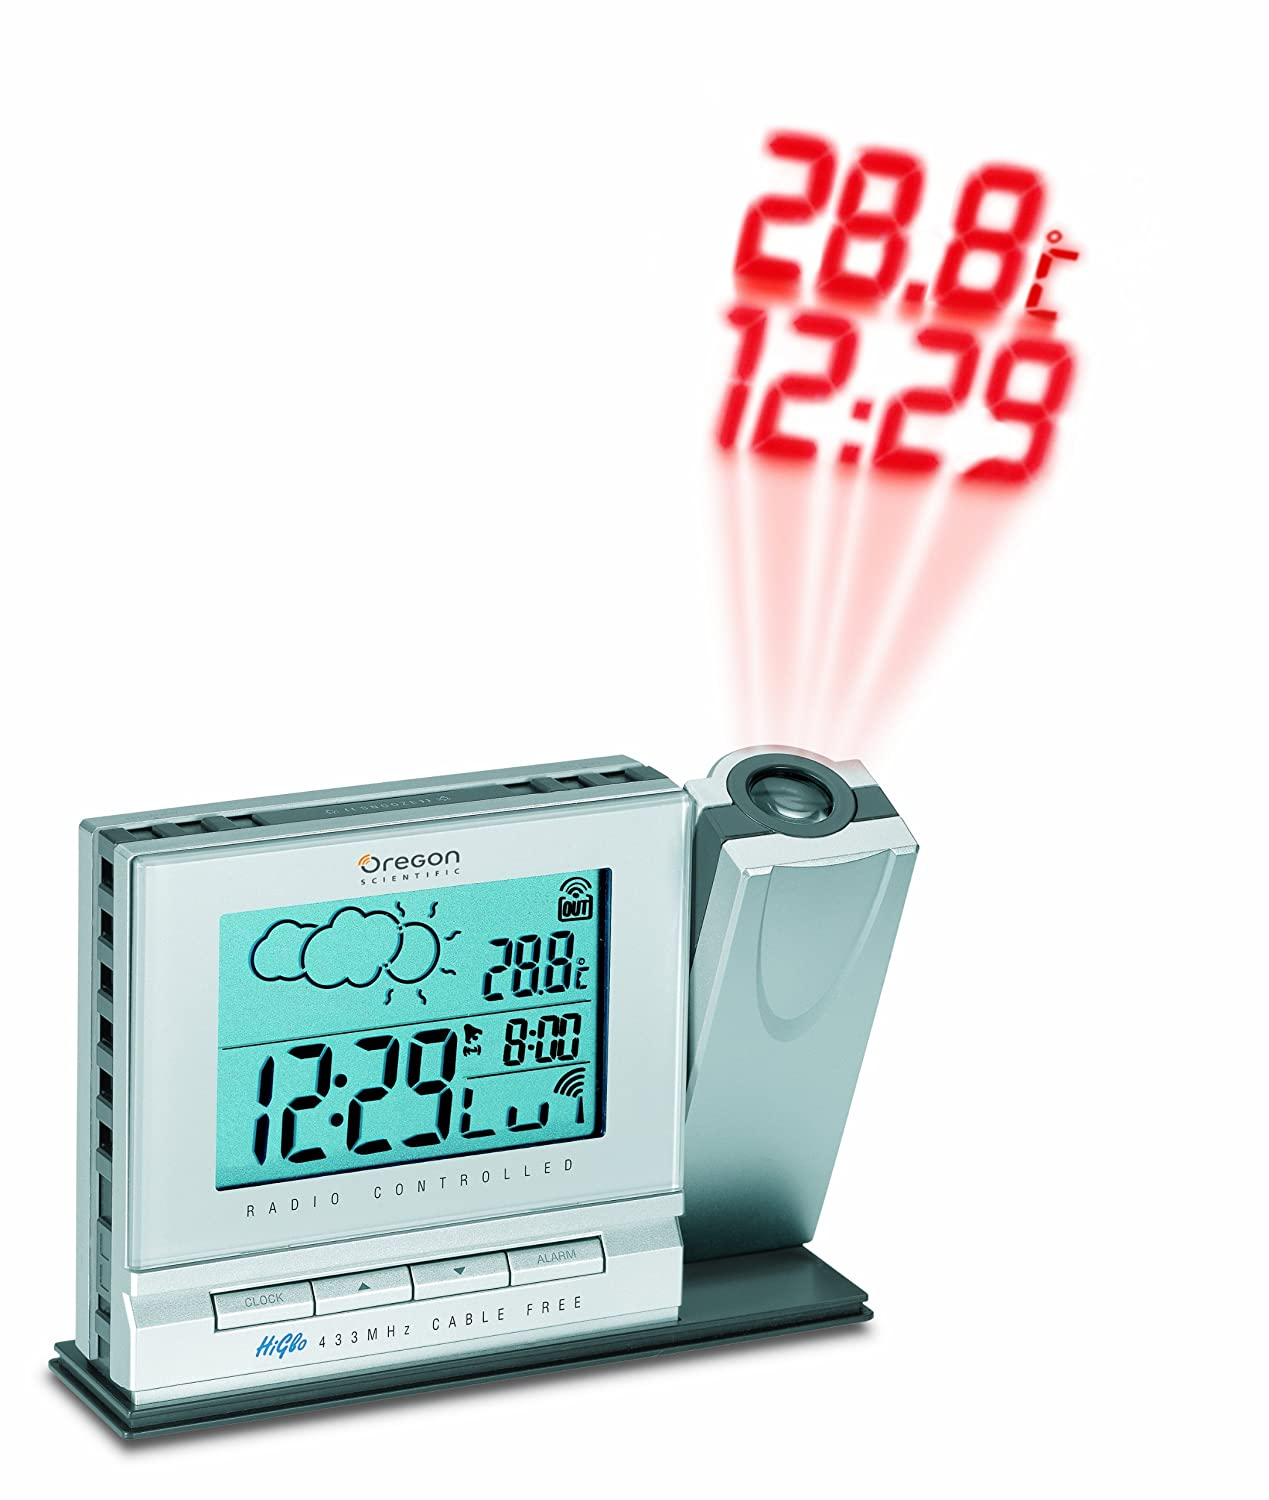 clock bar338pa boxs projection amazon co uk electronics rh amazon co uk Oregon Scientific WMR80A Weather Clock Oregon Scientific Alarm Clocks